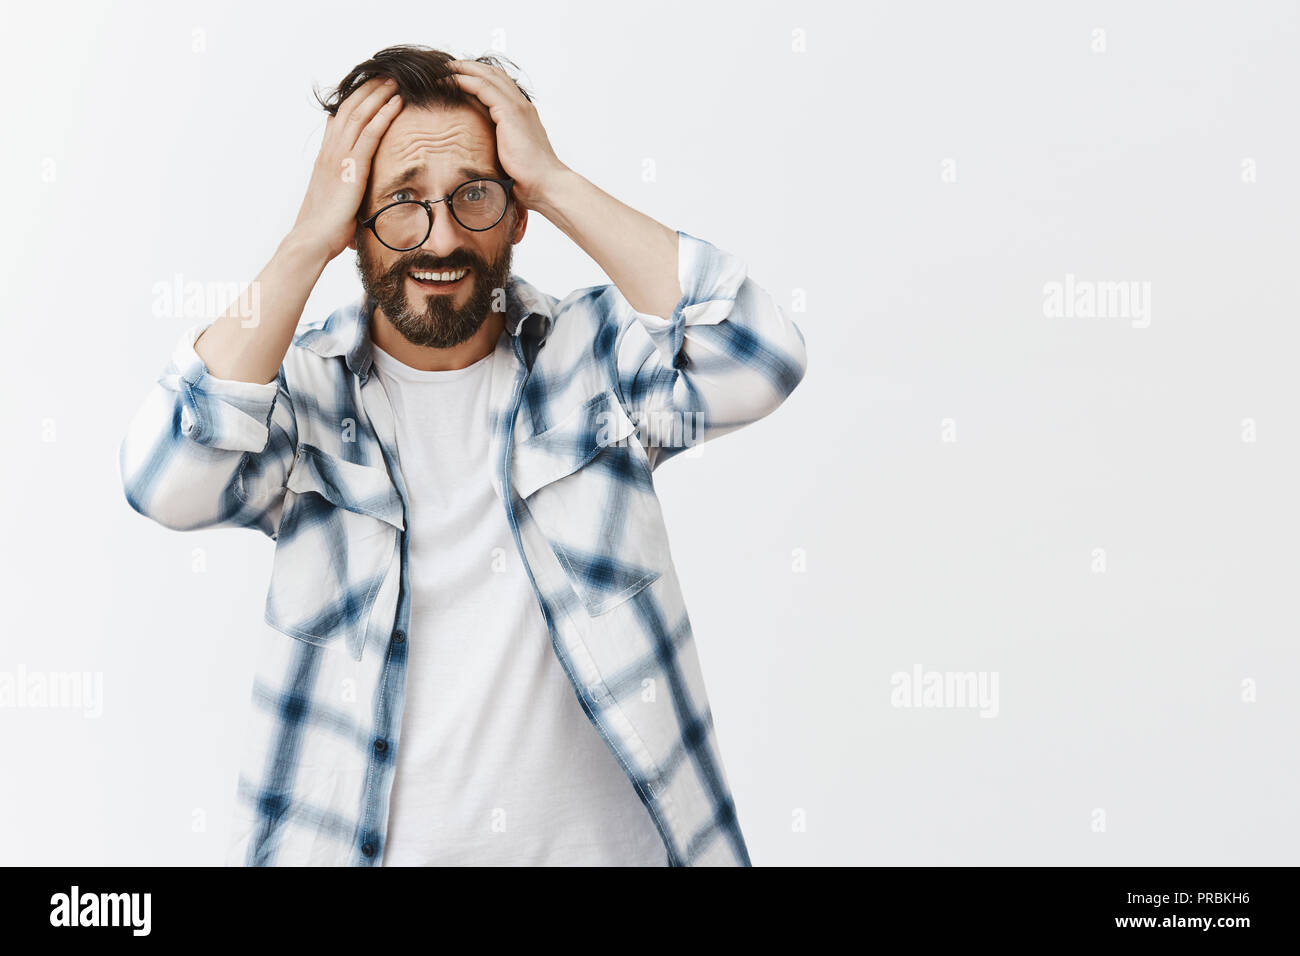 Man cannot remember how he got home after party, standing in crooked glasses, touching head and frowning, feeling headache from hangover, standing unhappy and gloomy over gray background Stock Photo